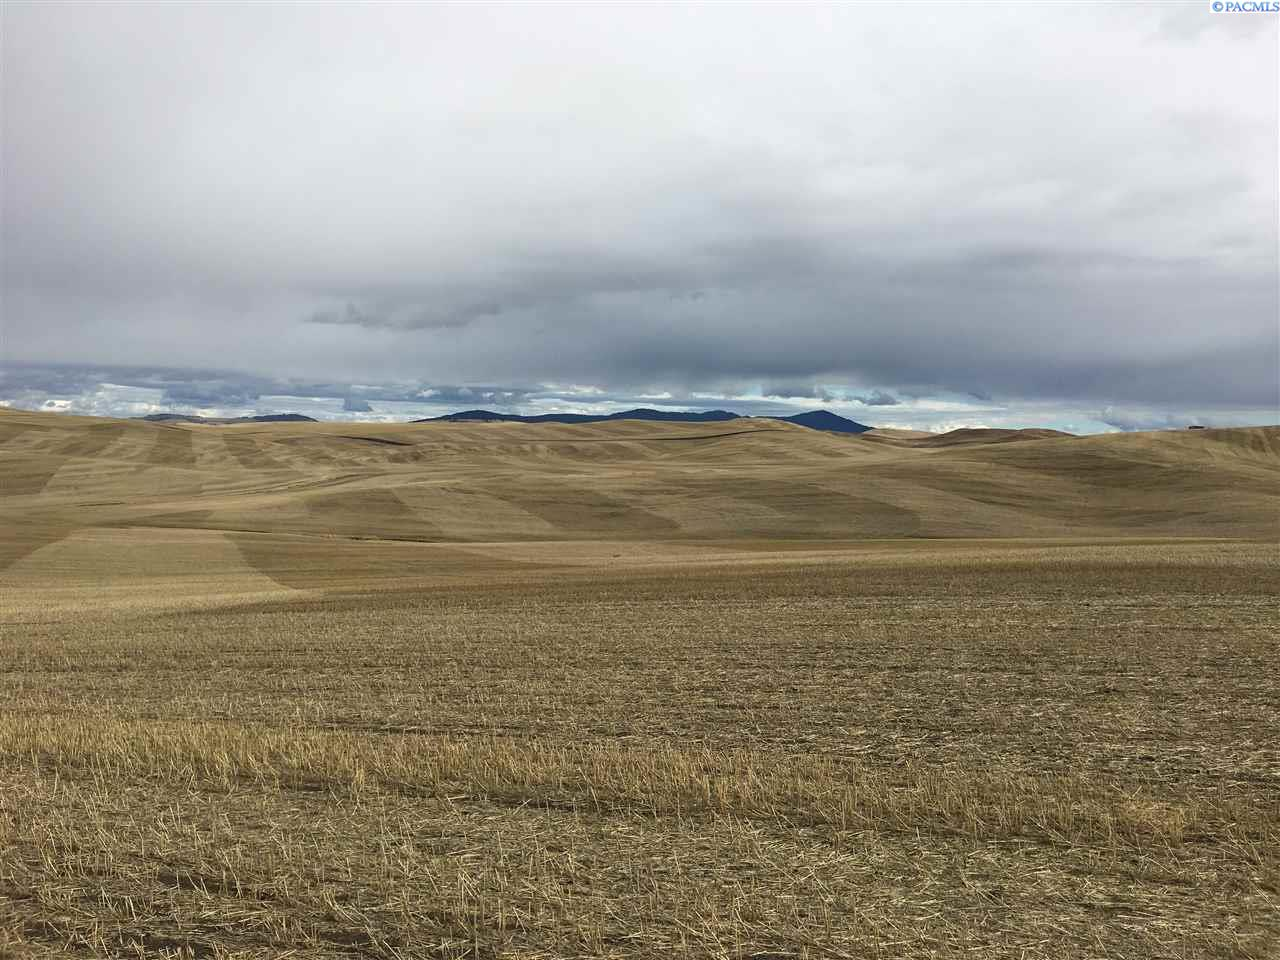 Land / Lots for Sale at Tbd Kitzmiller Road Tbd Kitzmiller Road Pullman, Washington 99163 United States